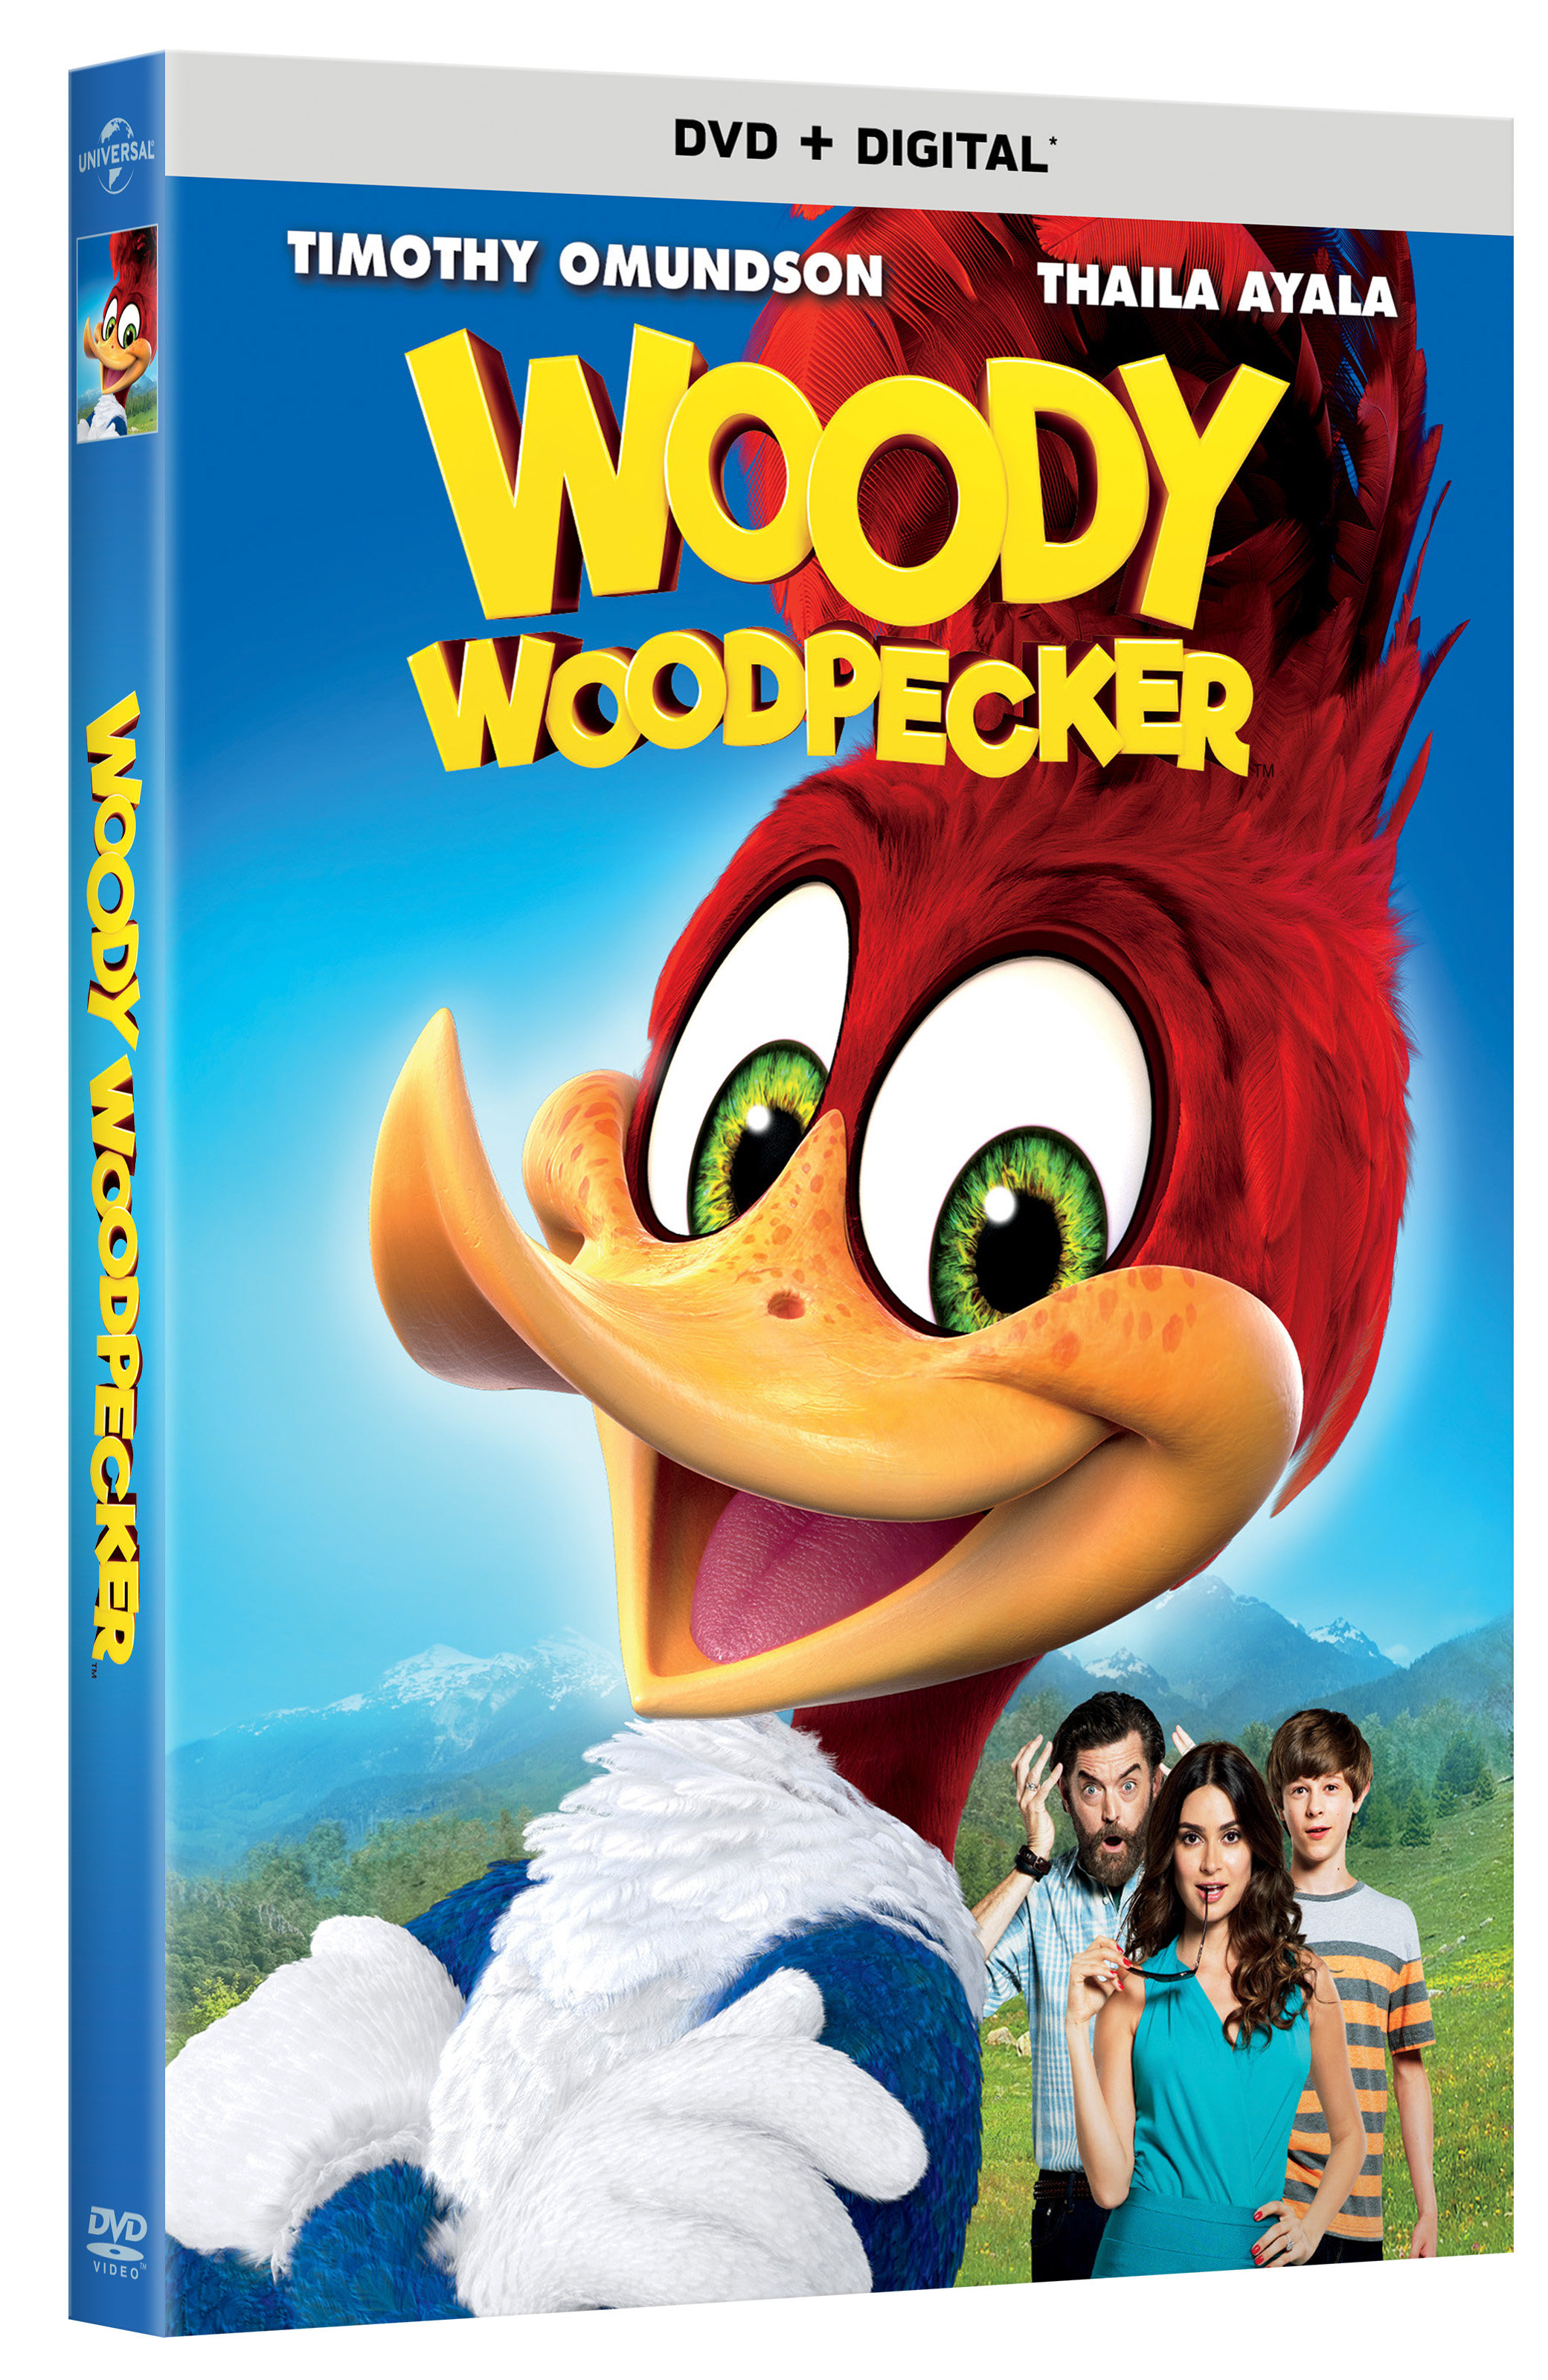 Woody woodpecker home release info nothing but geek for American cuisine dvd